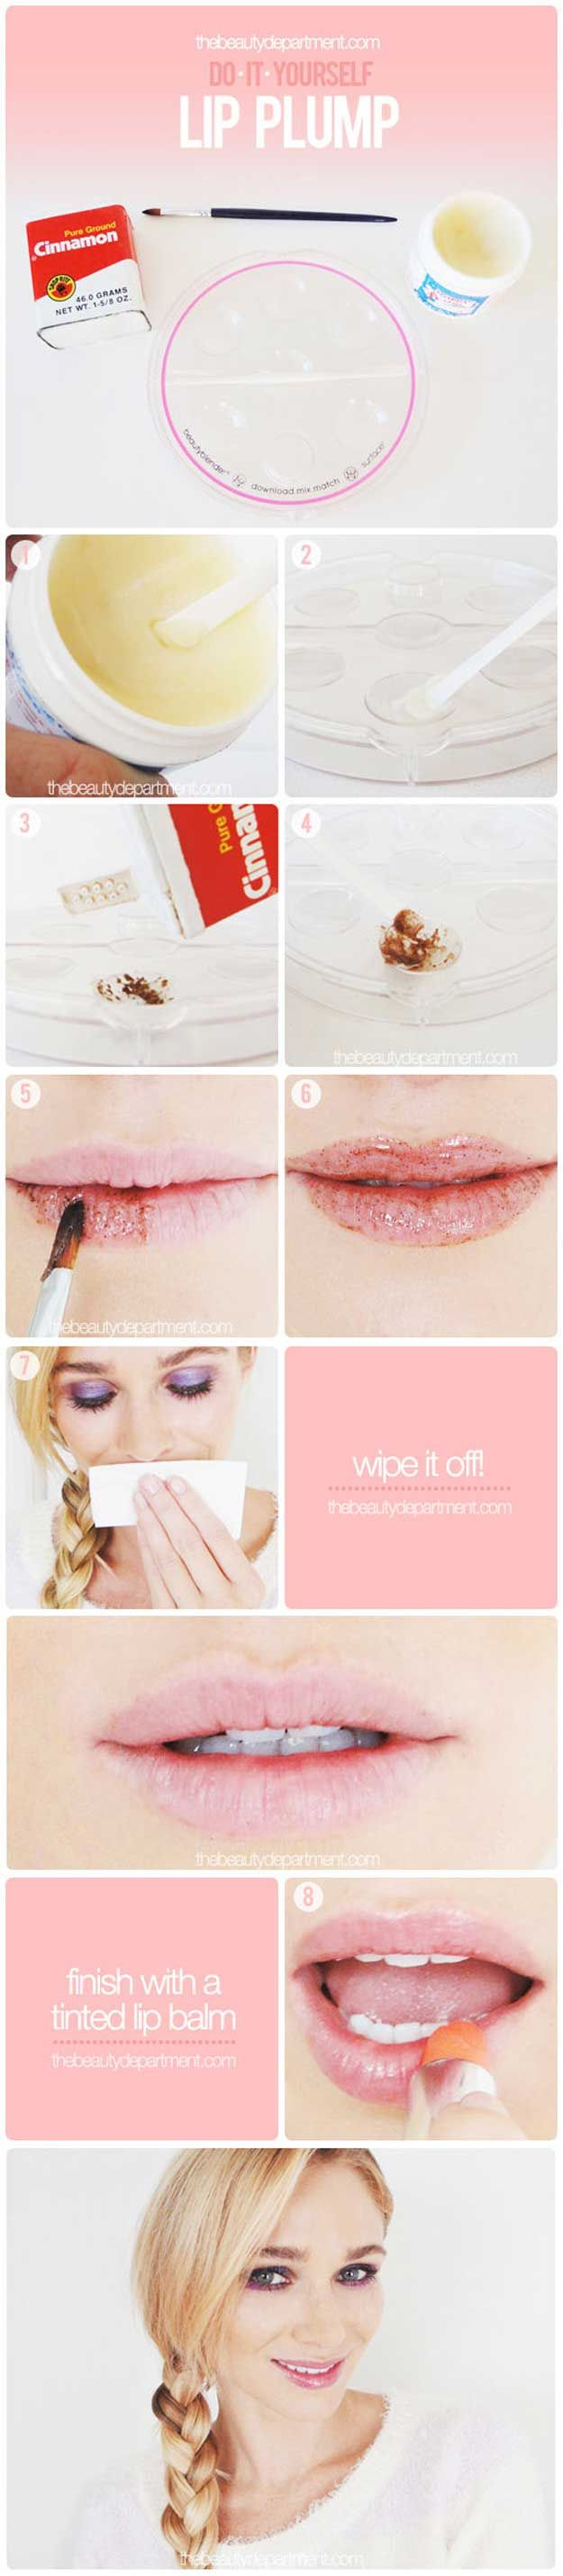 Check out 11 DIY Lip Plumper Ideas for Naturally Plump Lips at http://diyready.com/diy-lip-plumper-ideas/